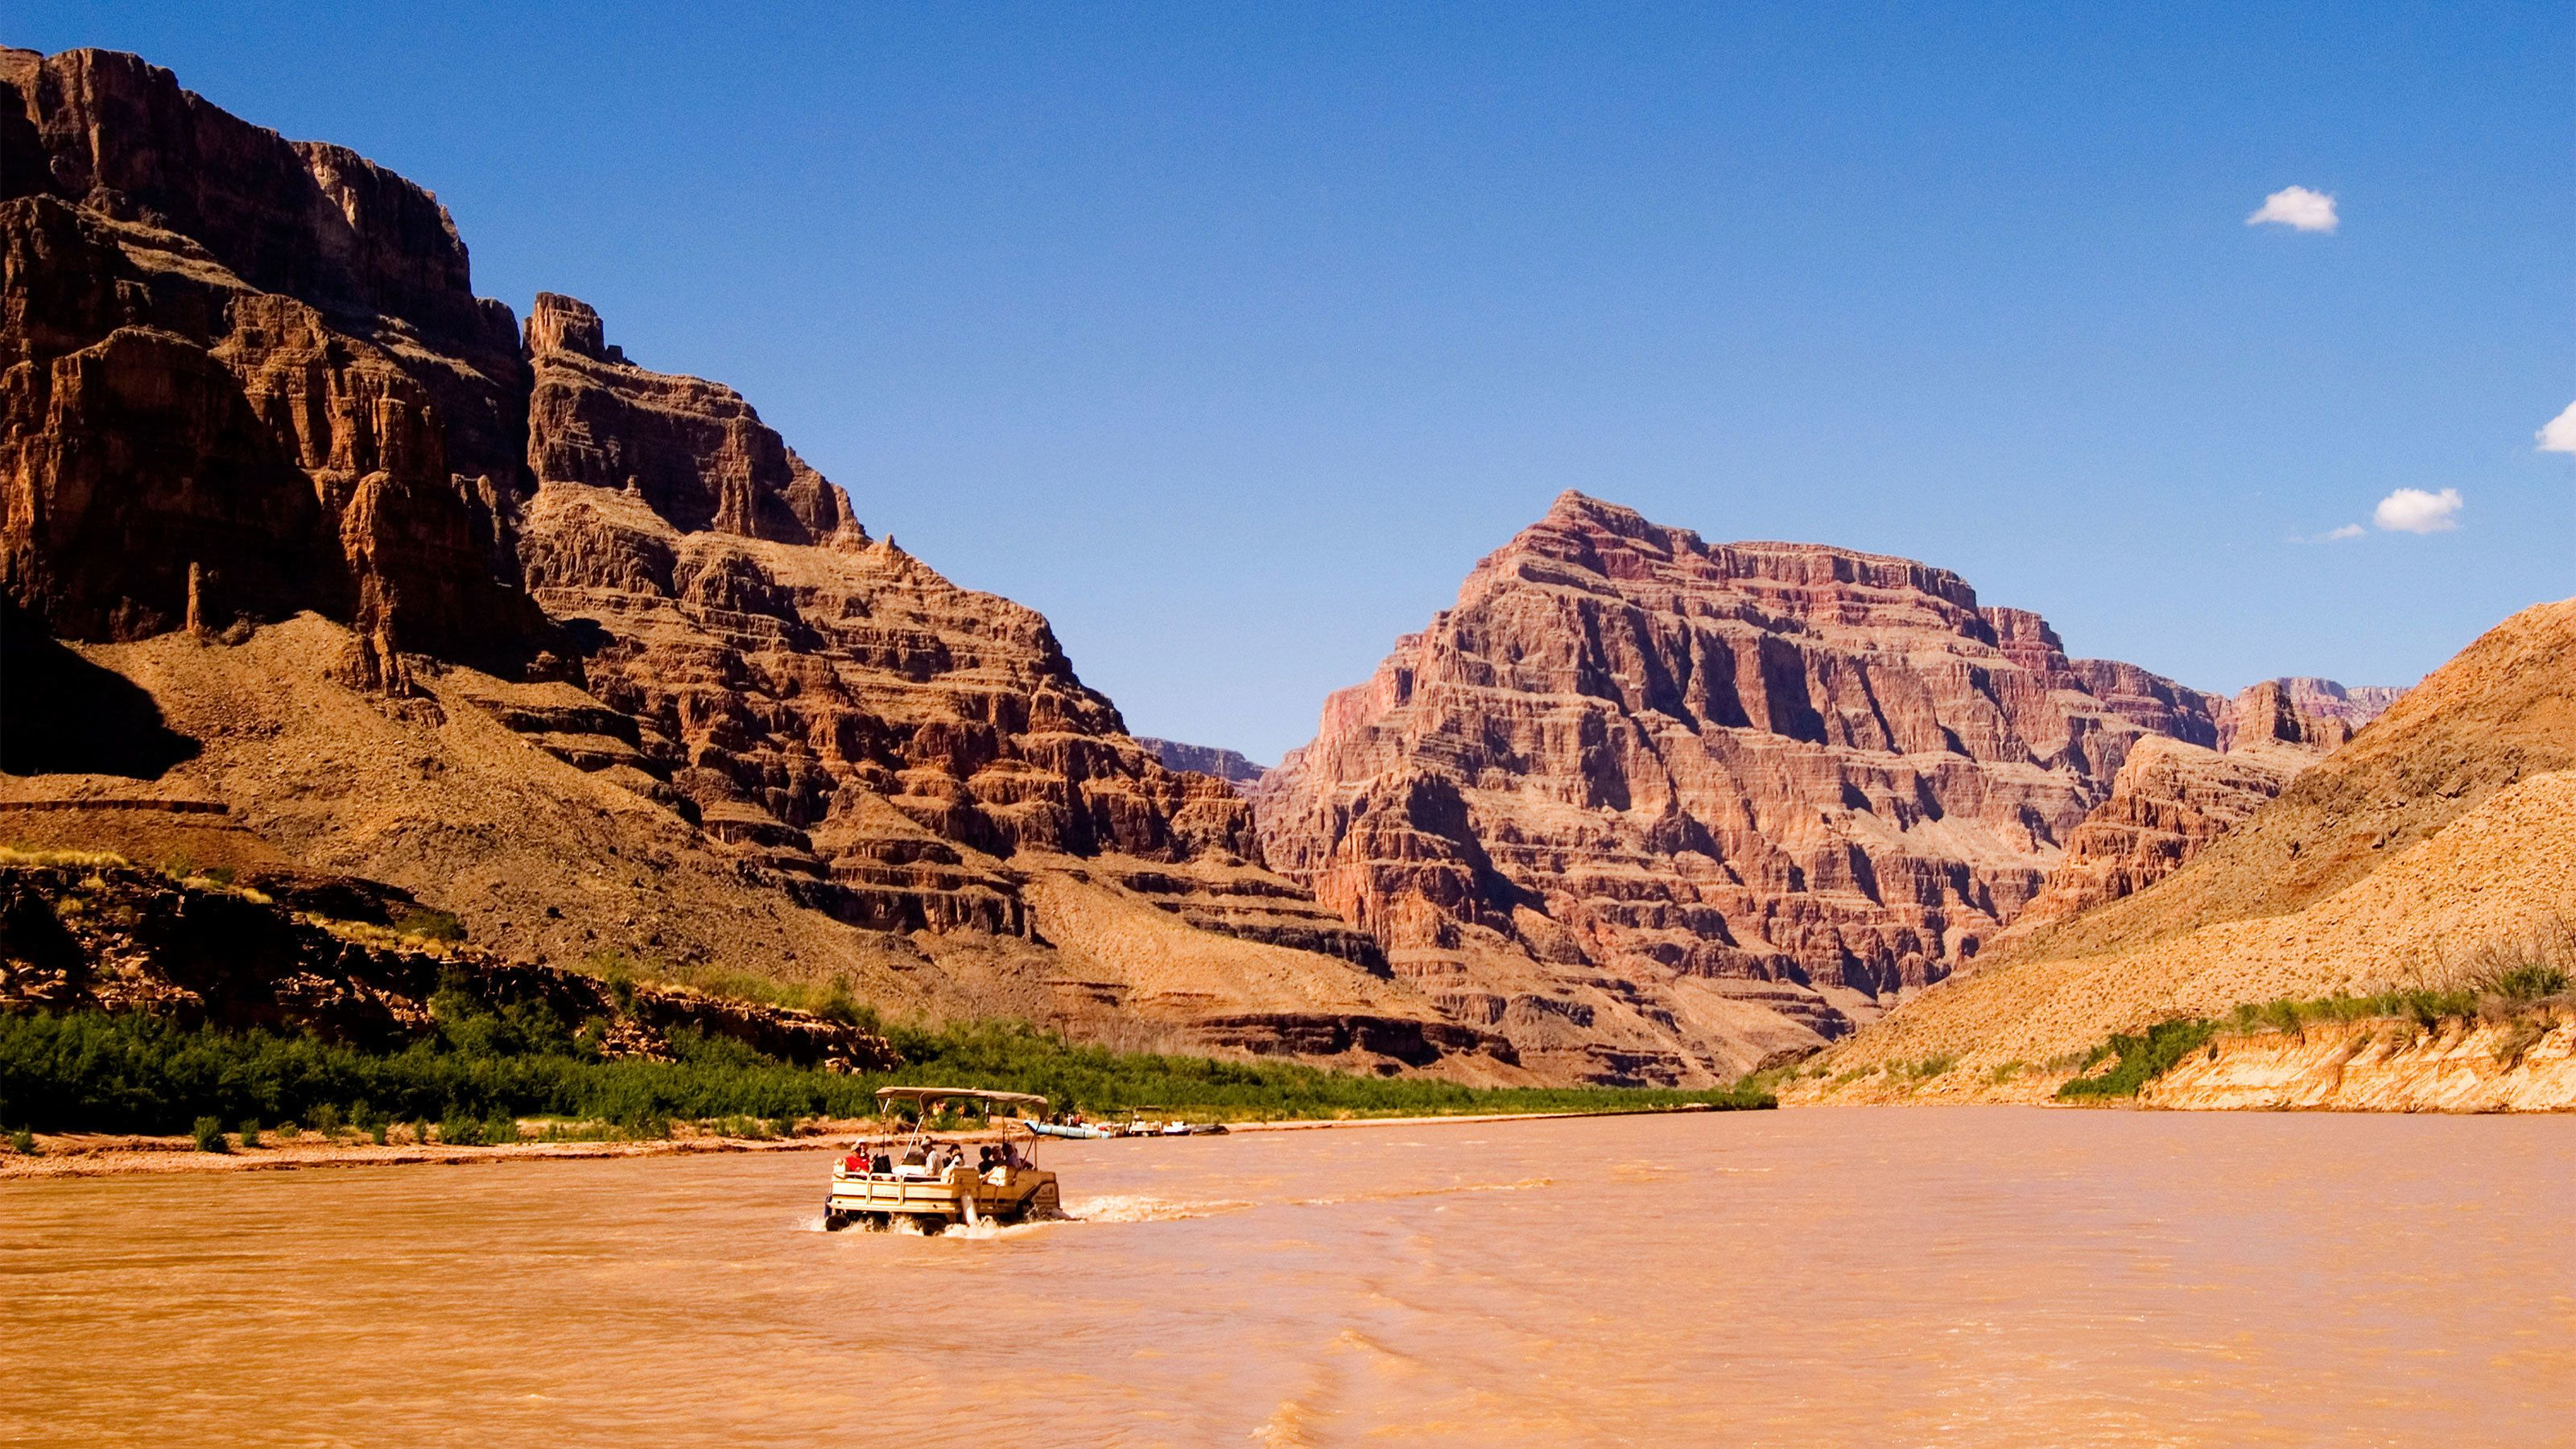 Tour boat on the Colorado River in the Grand Canyon